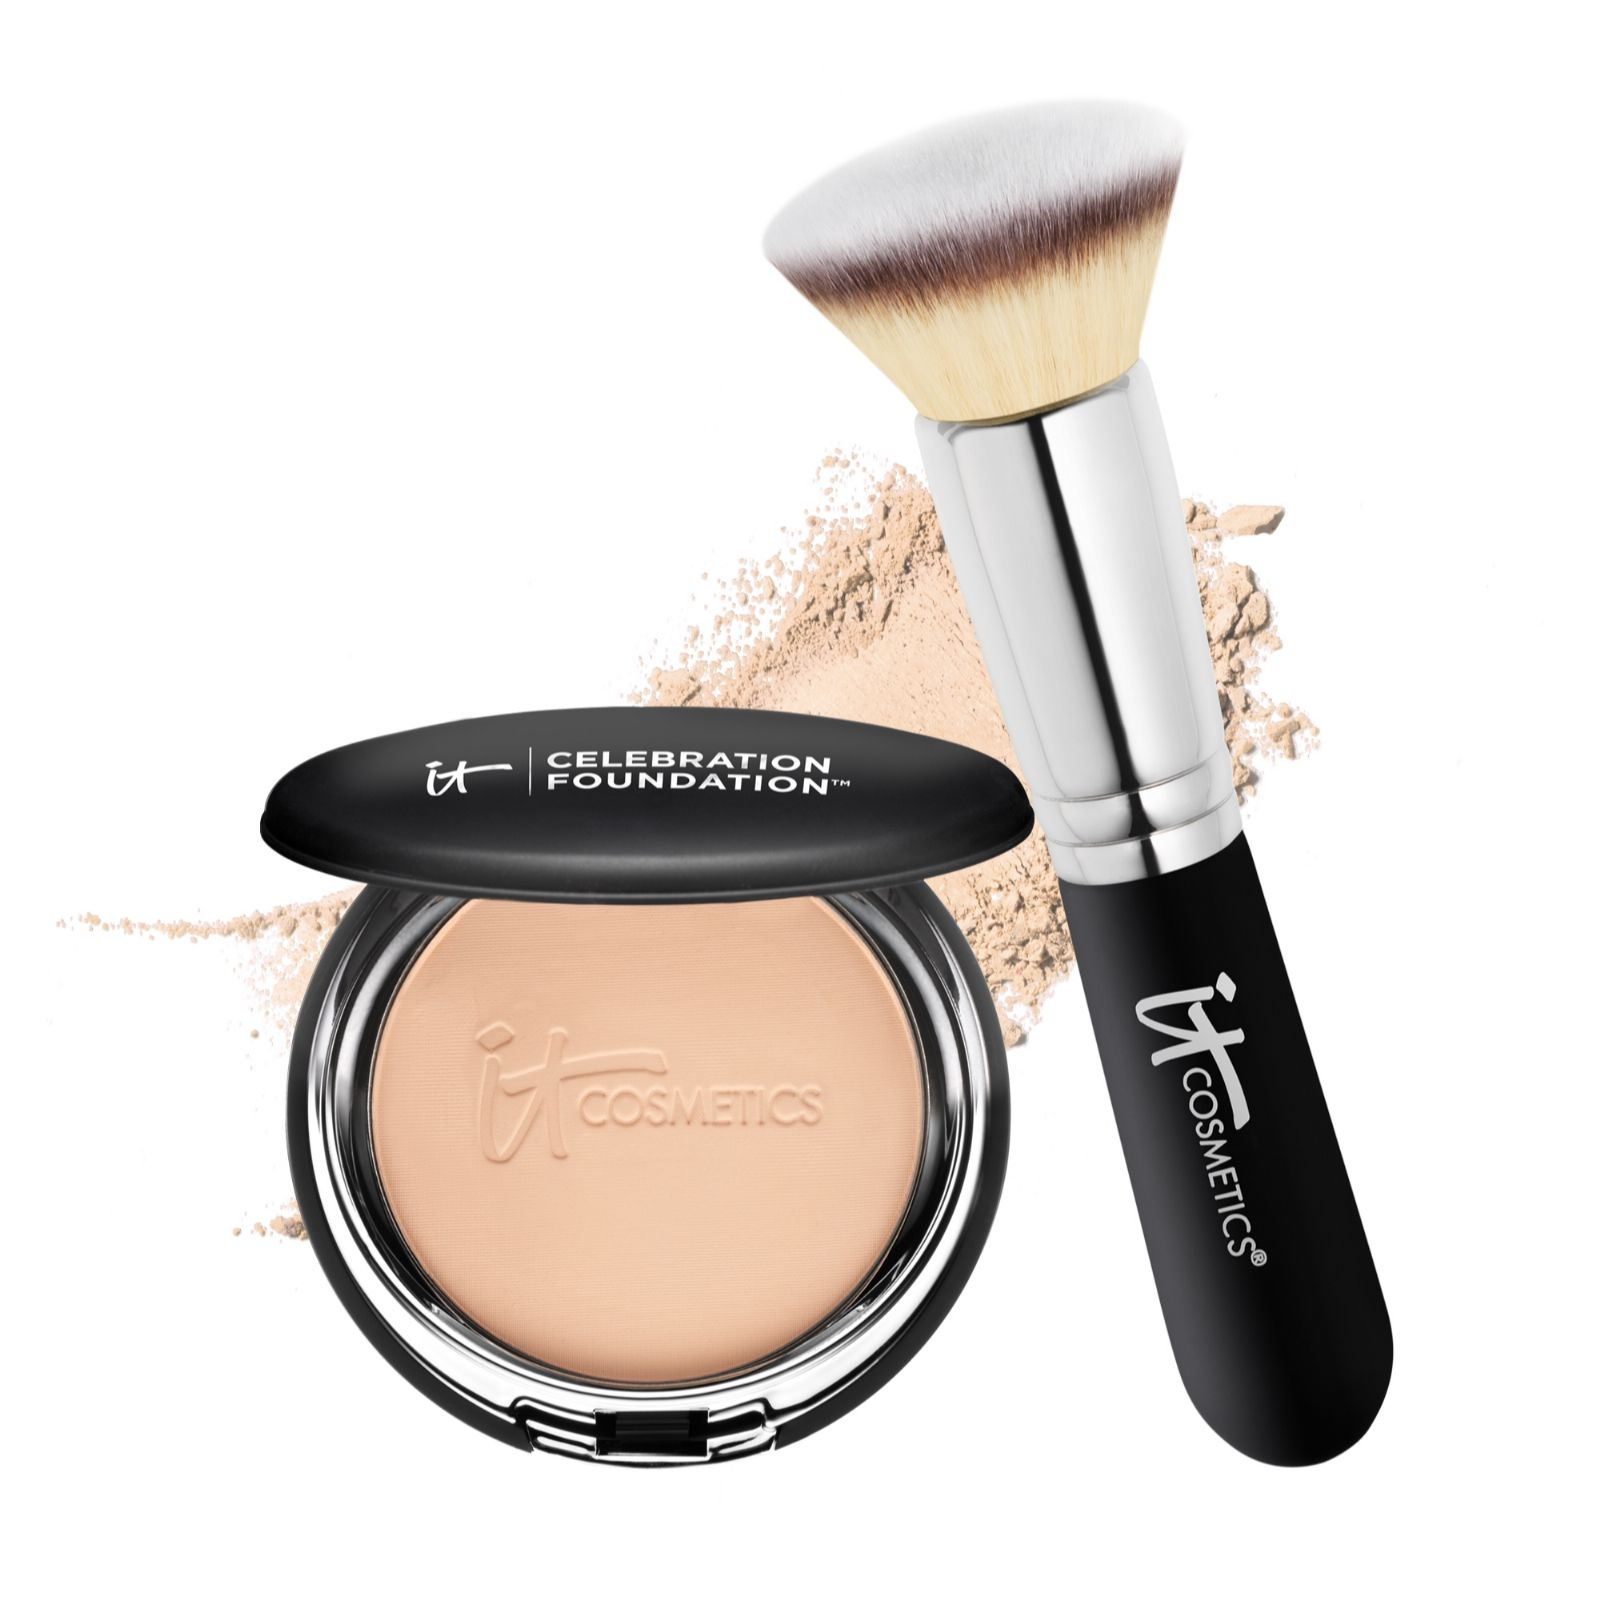 9a2d8a89abc IT Cosmetics Celebration Foundation & Heavenly Luxe Flat Top Brush - Page 1  - QVC UK